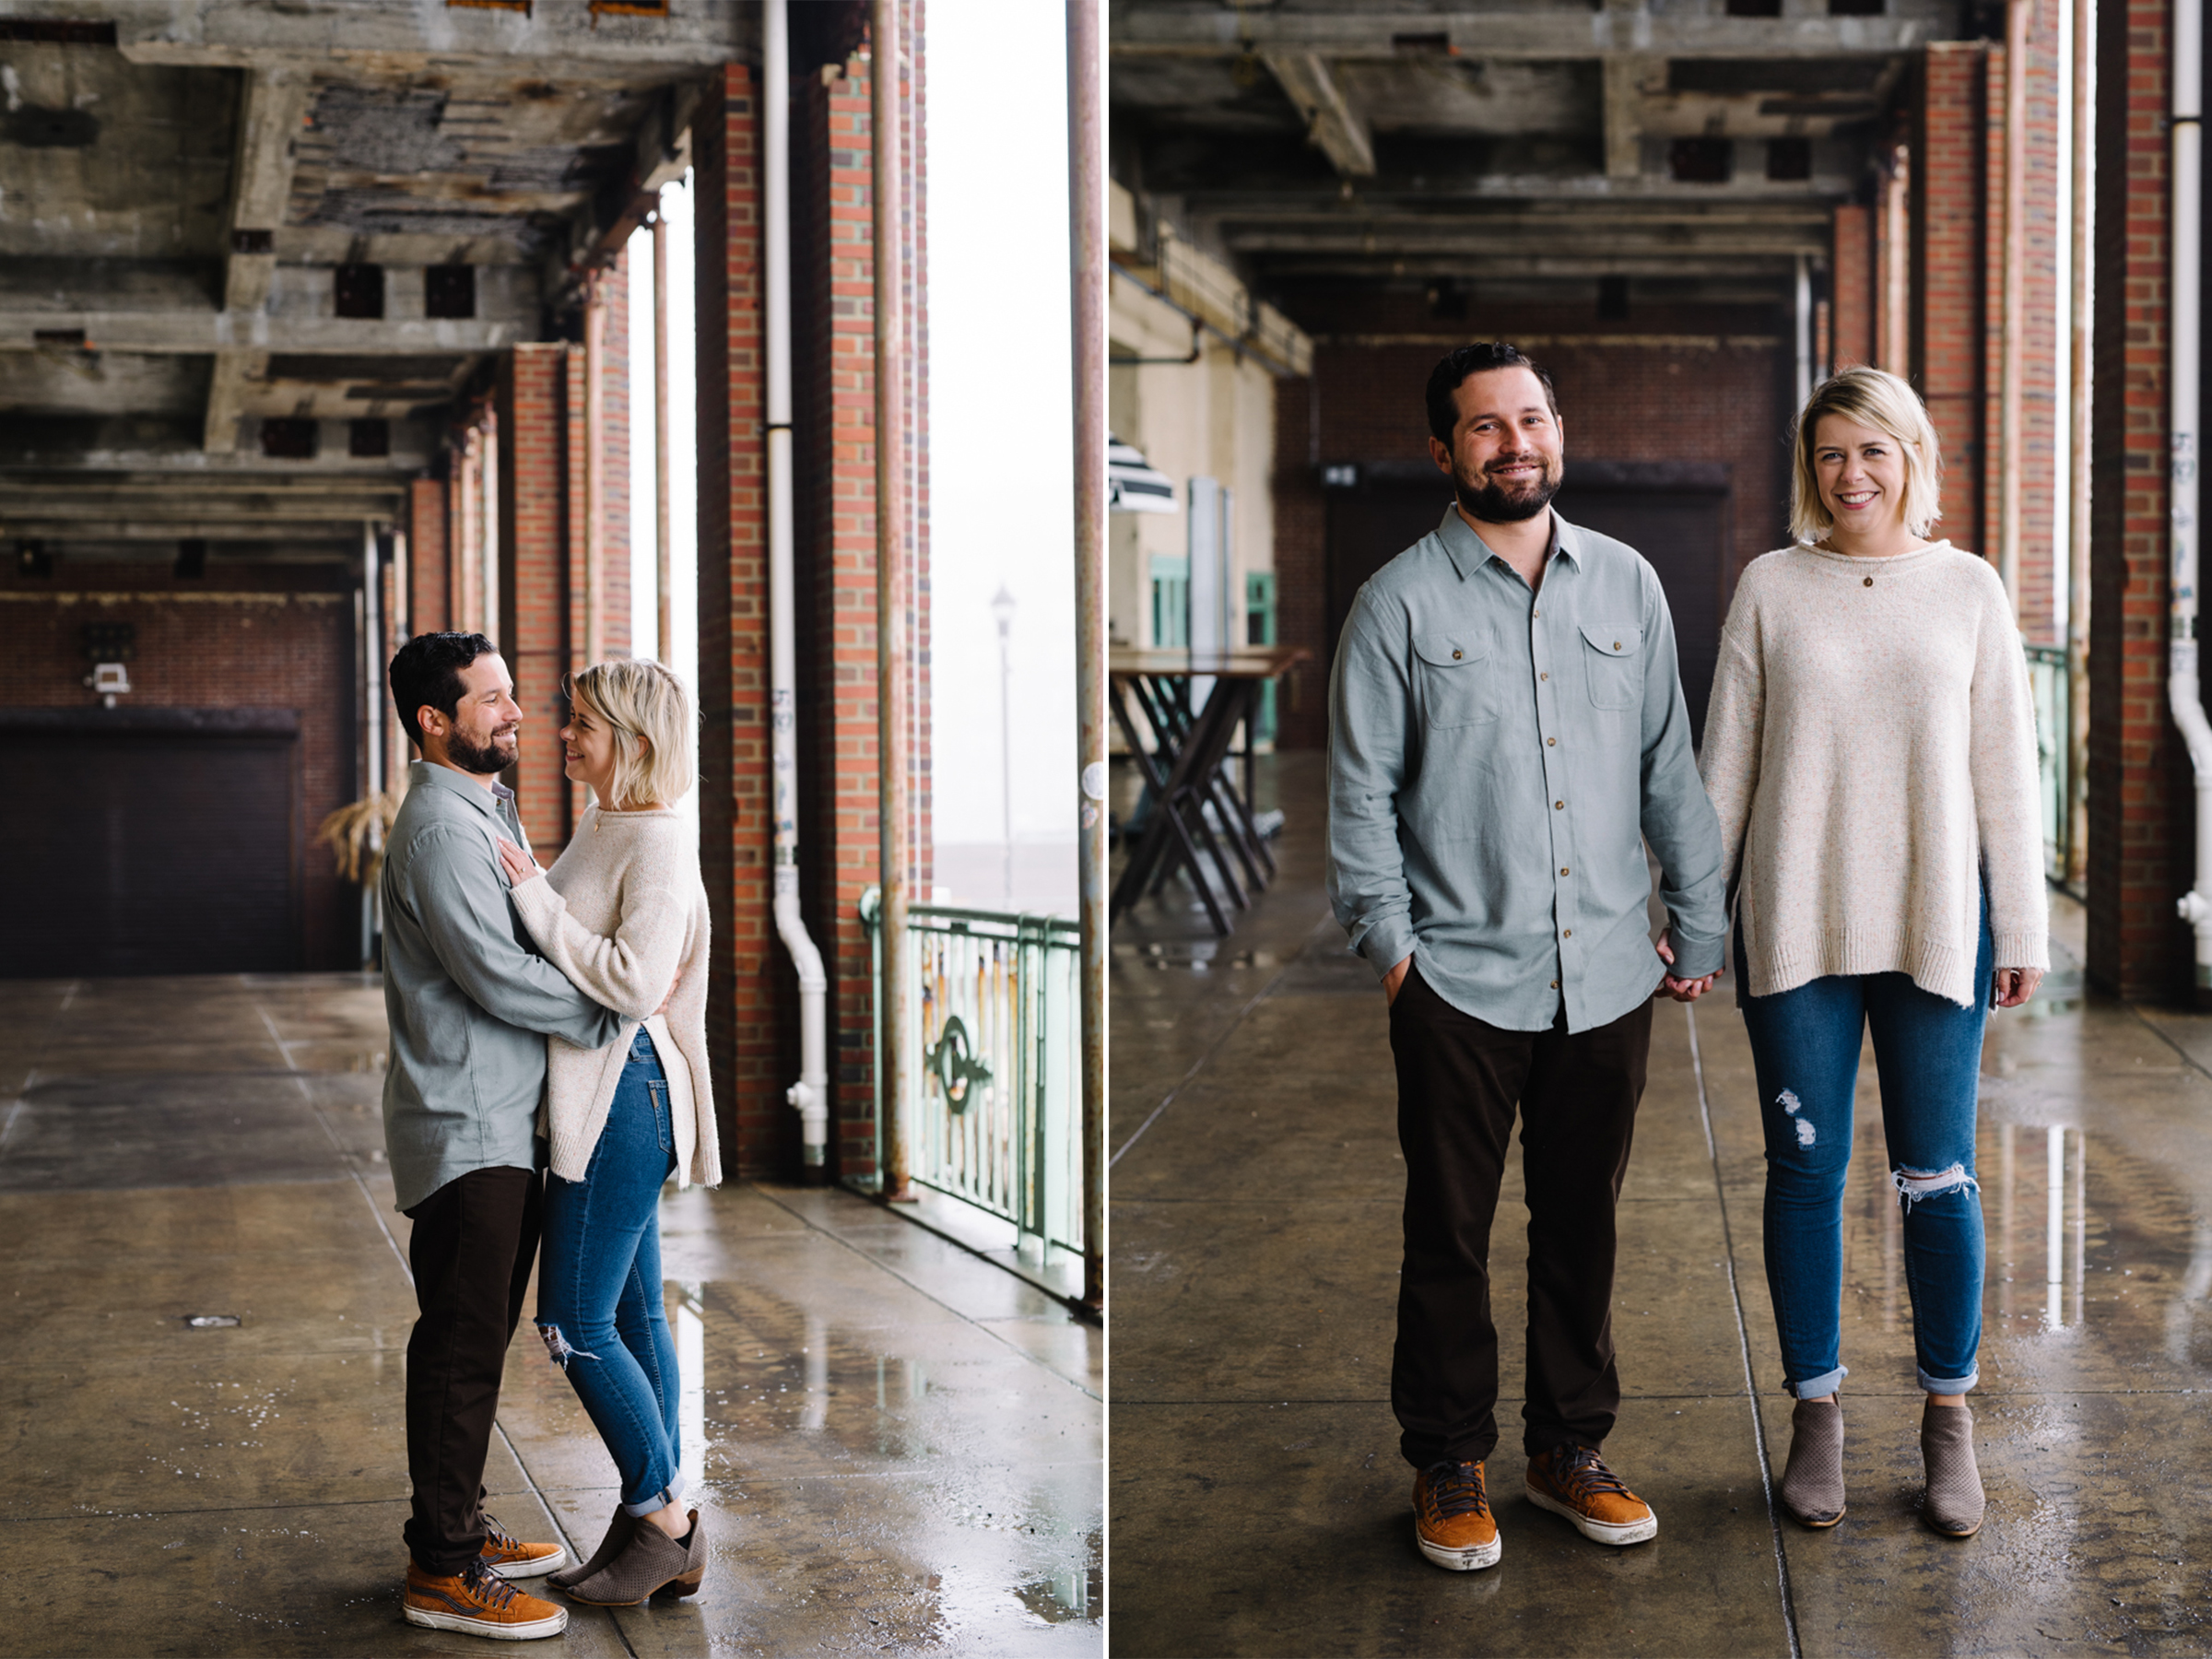 Asbury Park Engagement Session- Johanna+Danny-Industrial Space-New Jersey- Olivia Christina Photo-1.jpg